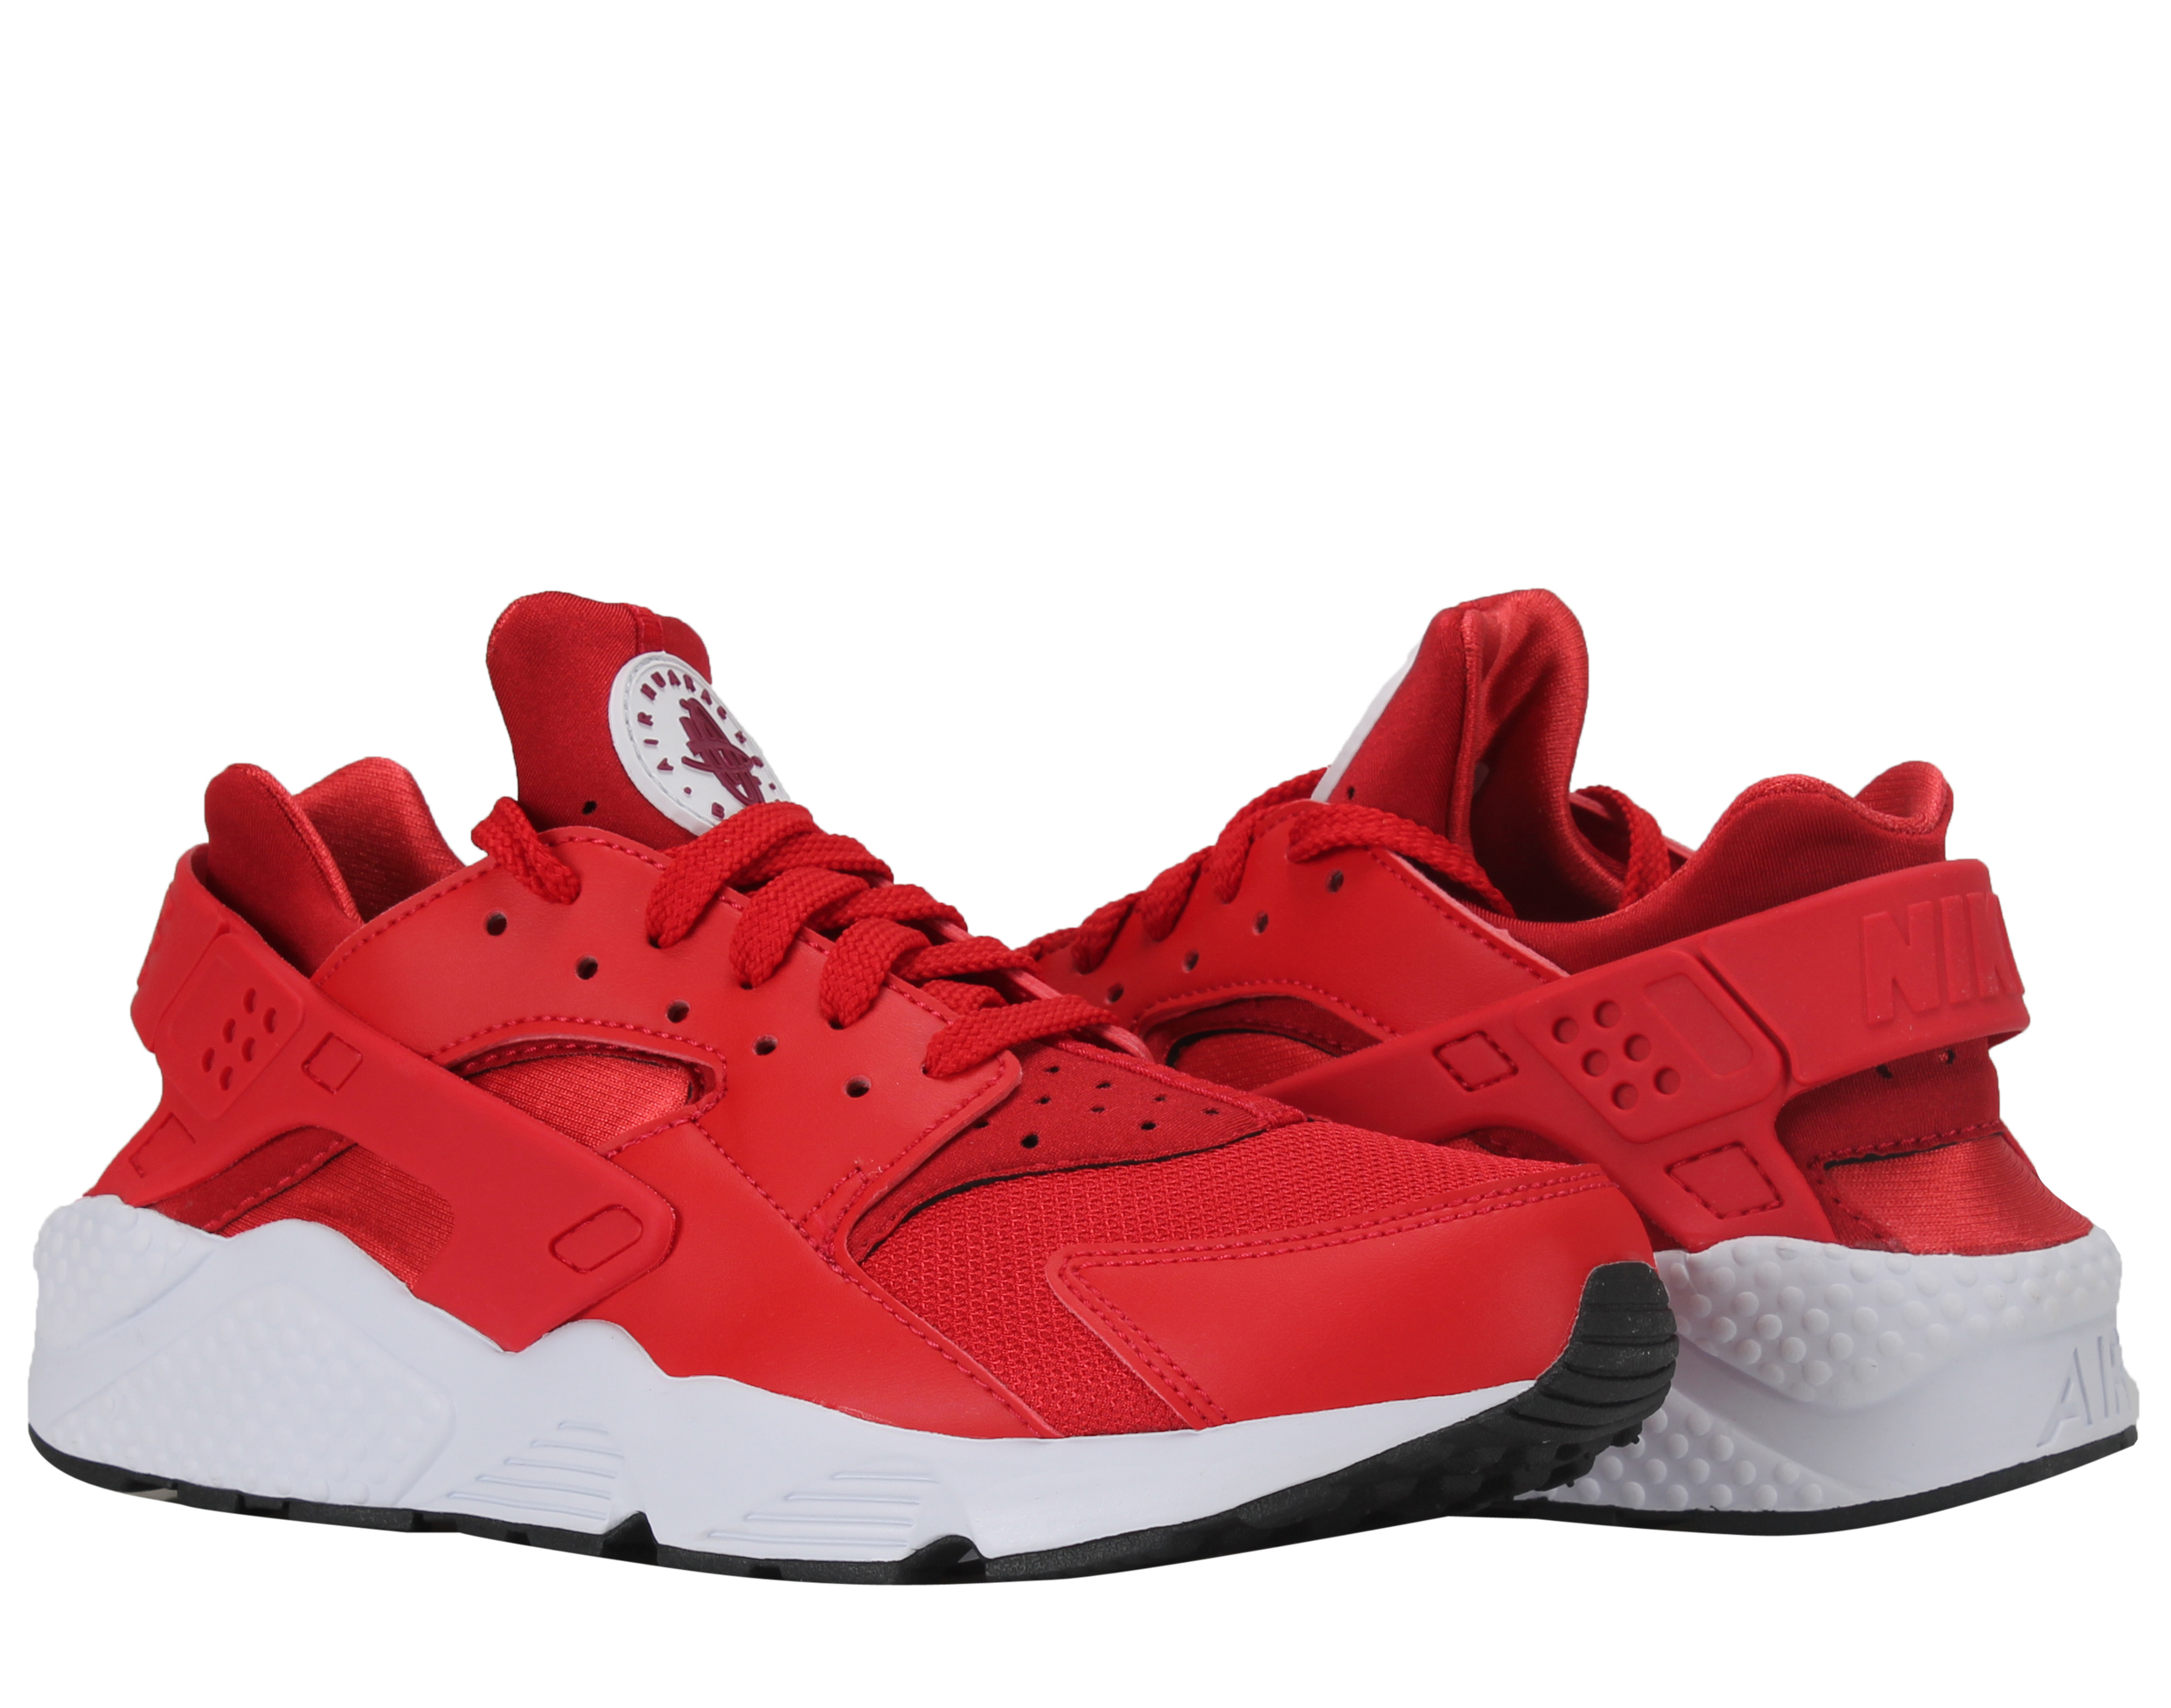 Nike Air Huarache University Red Berry-White Men's Running Shoes 318429-604 by Nike